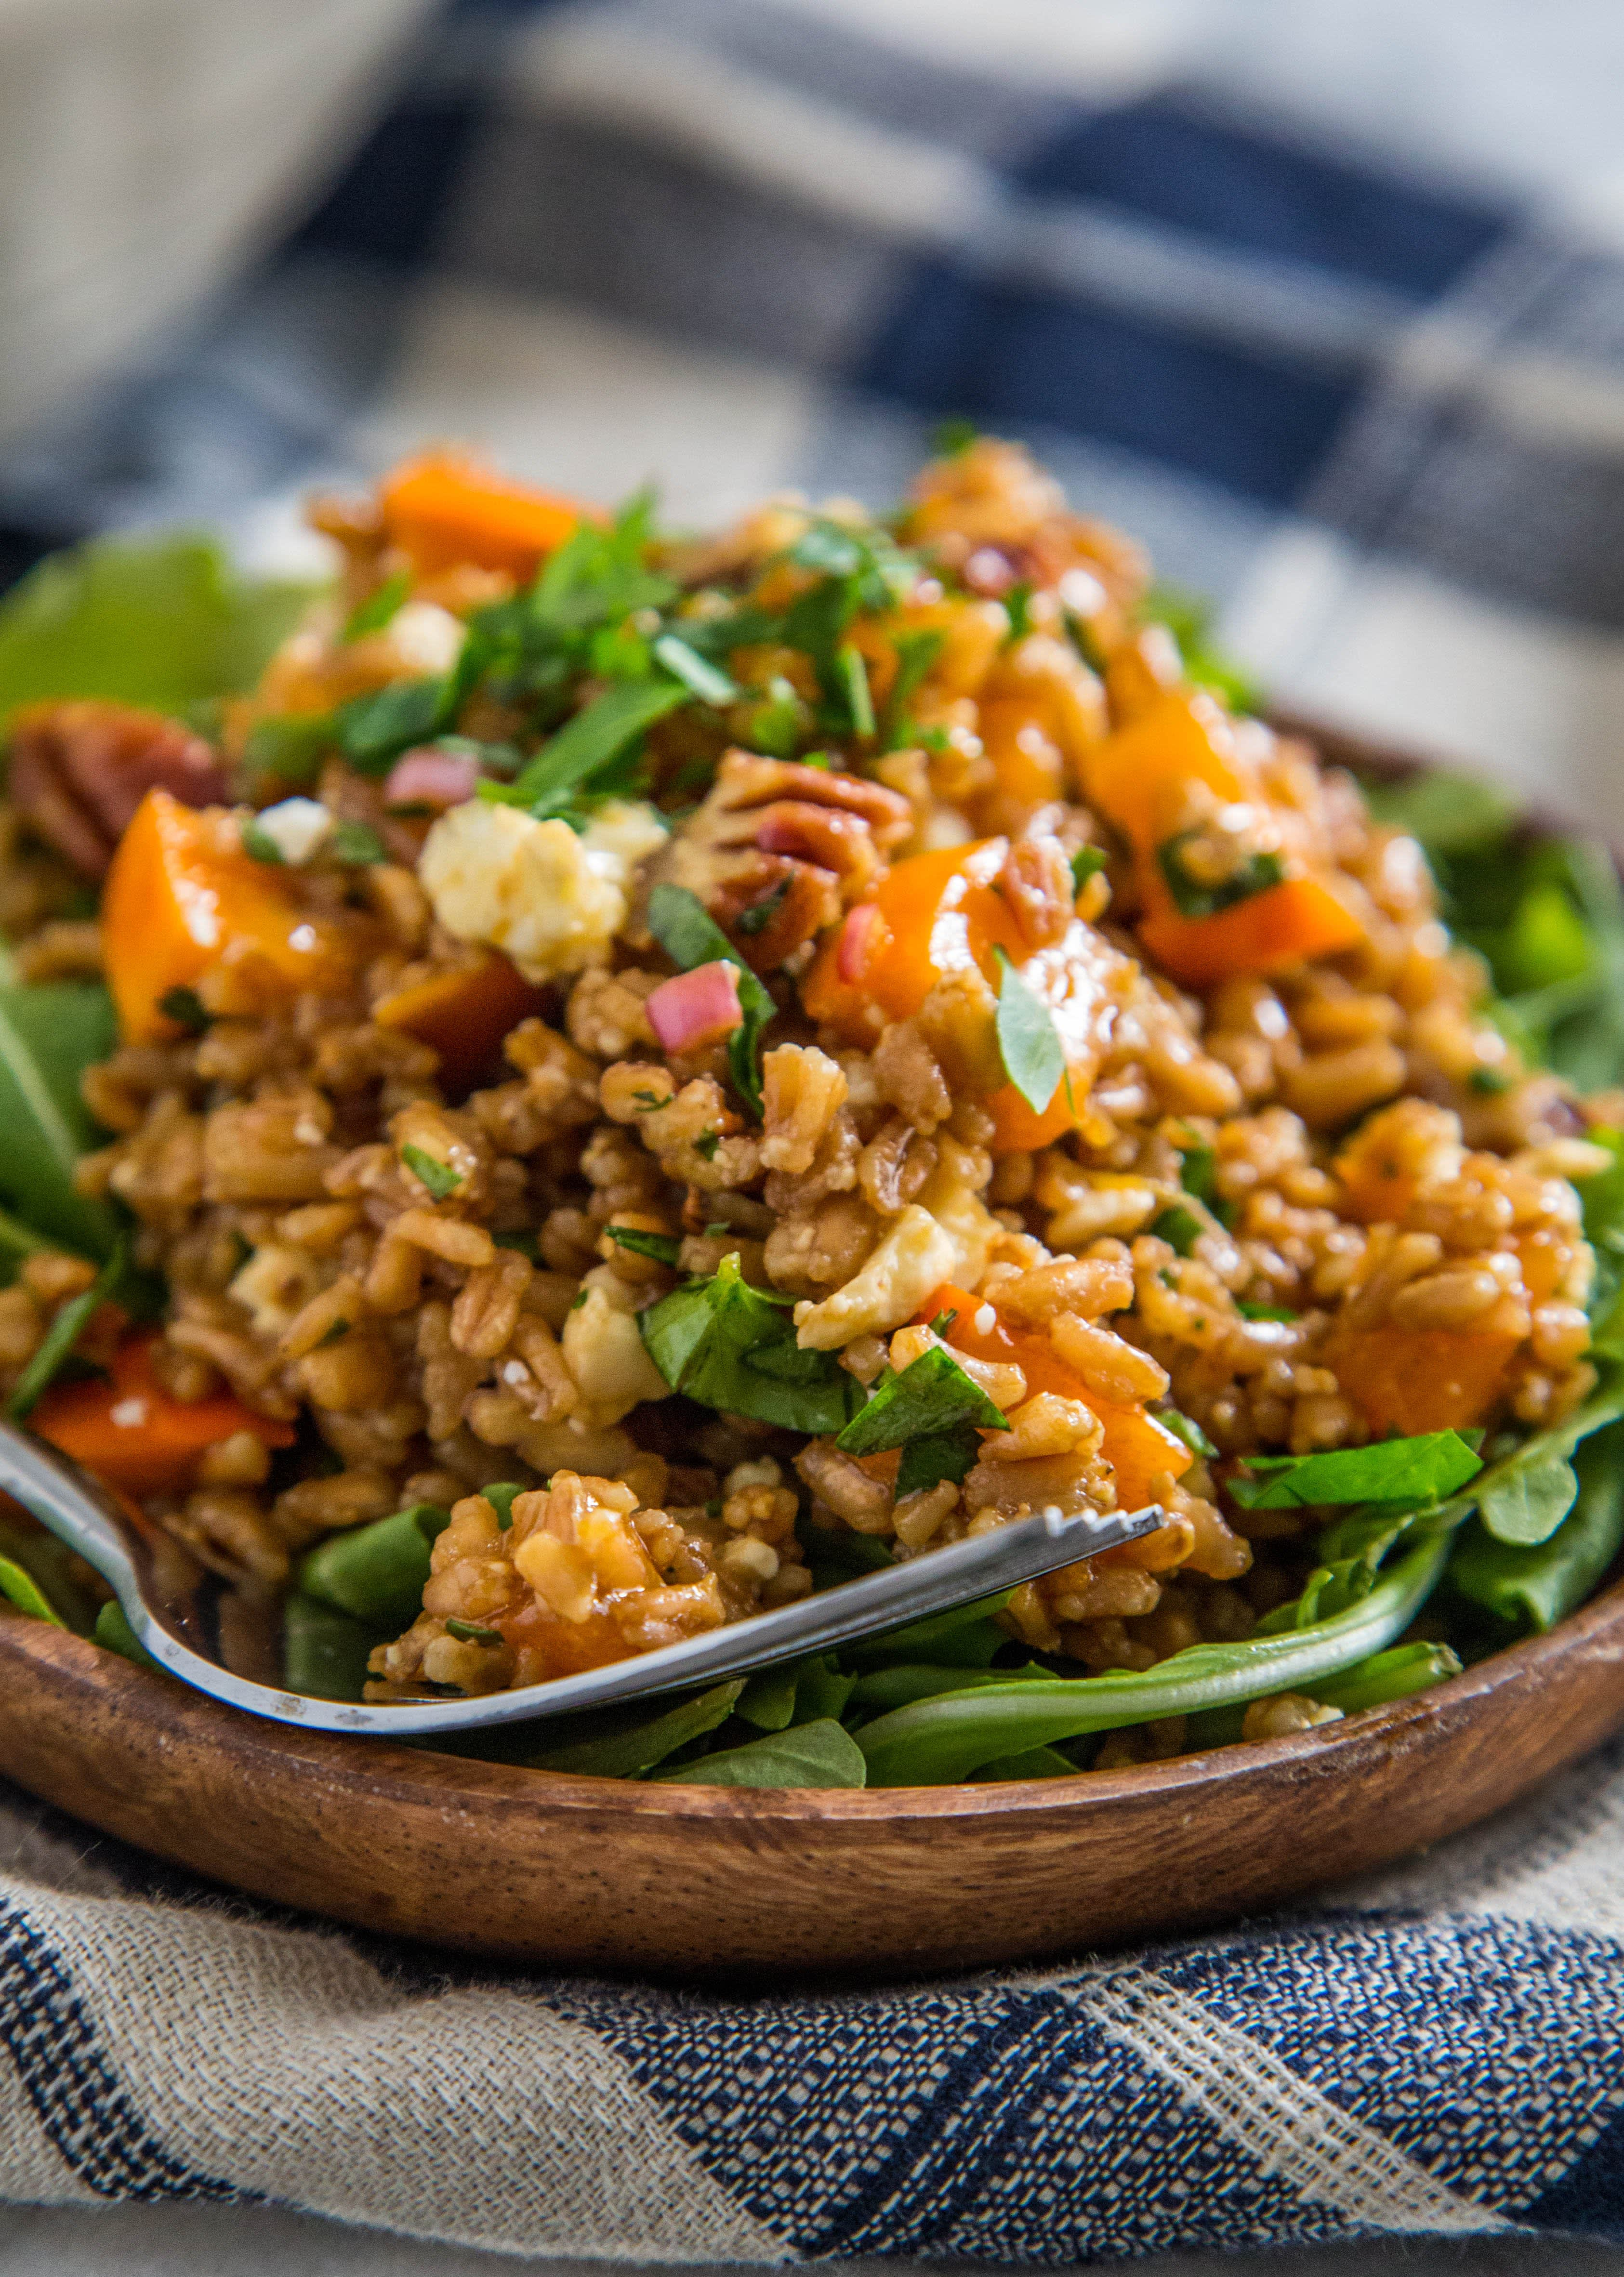 Warm Farro Salad with Roasted Squash, Persimmons and Pecans